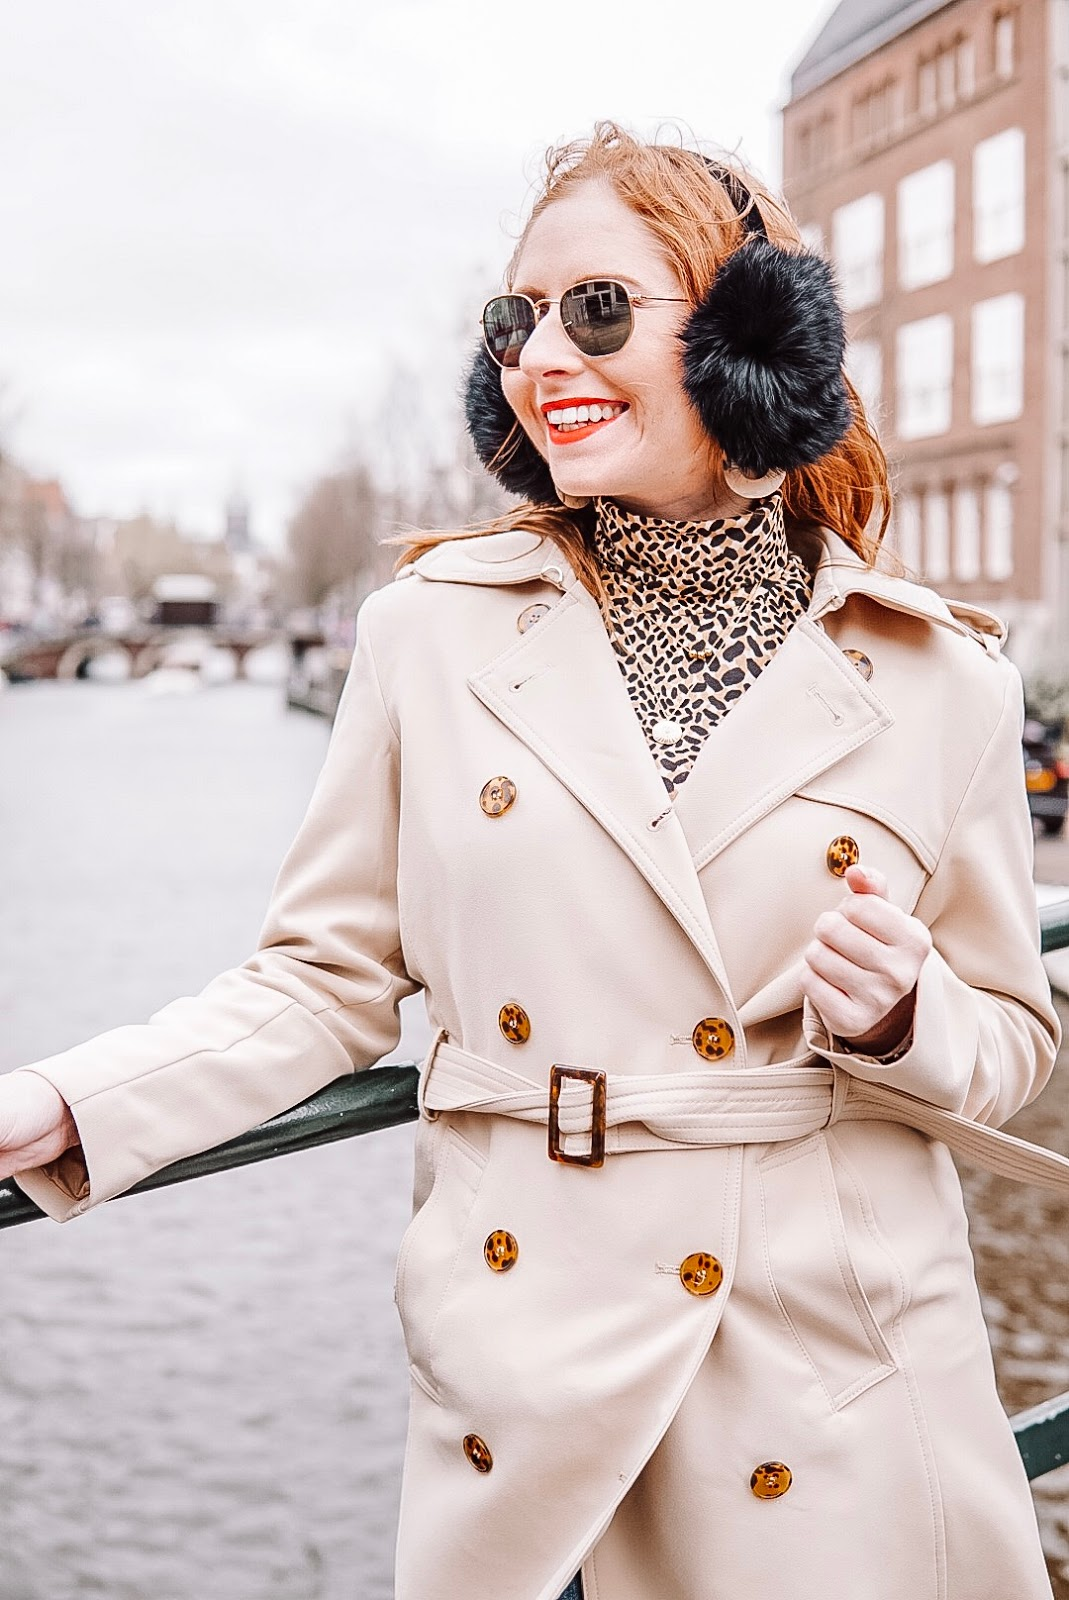 amanda burrows is a tampa blogger traveling to amsterdam in the spring. she is wearing a tan trench coat from h&m.